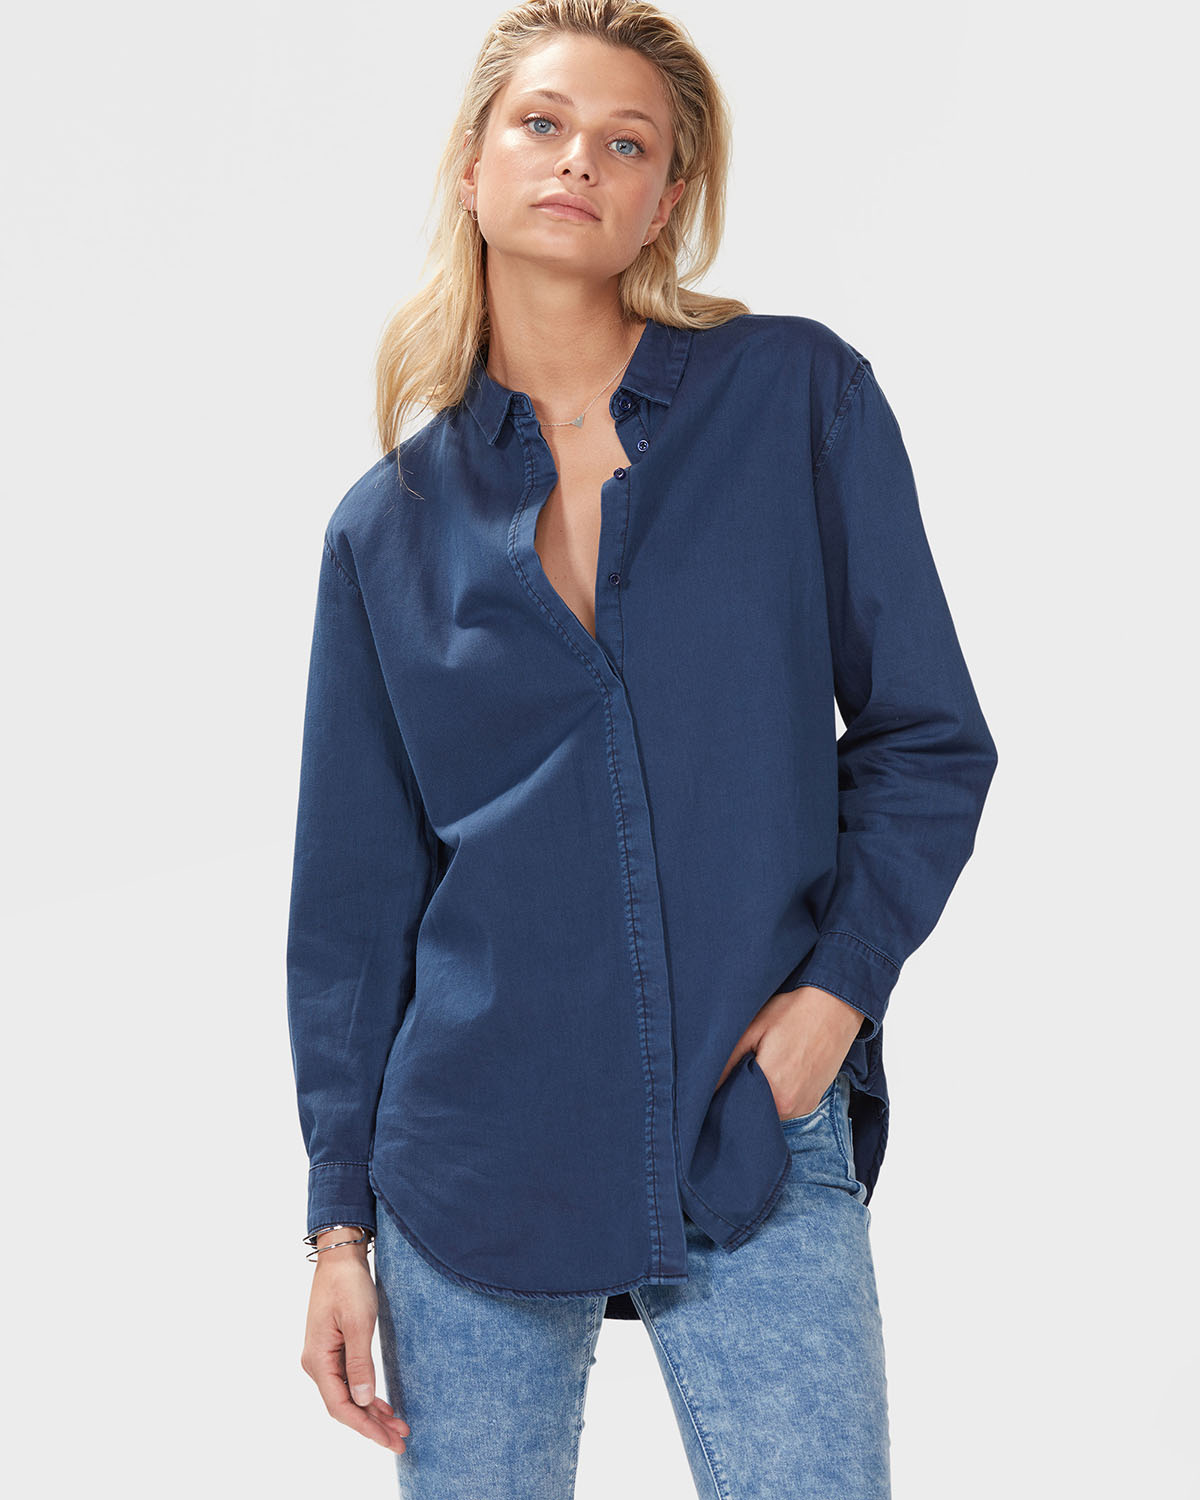 Shop Women's Shirts & Blouses at Forever 21! Dress up in variety of knit and woven styles including button-down blouses, plaid shirts, off-the-shoulder tops, combo bodysuits, crop tops, and short and long sleeve shirts.